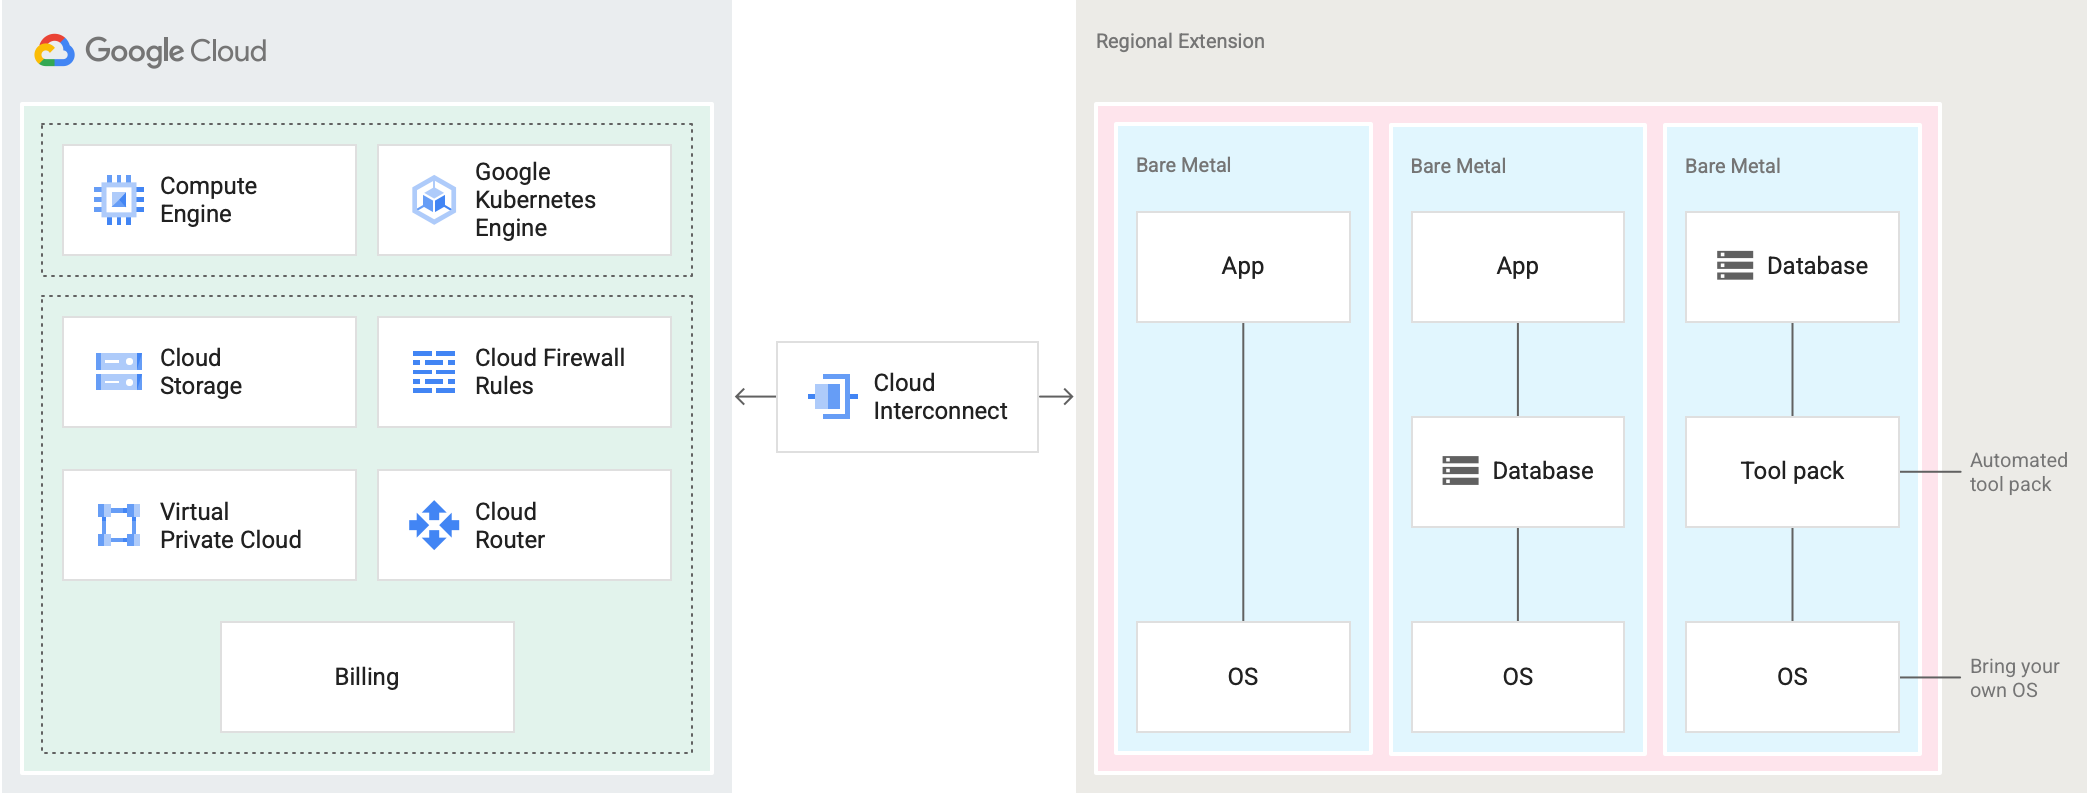 Bare-metal servers are shown in a regional extension that is colocated with a Google Cloud data center